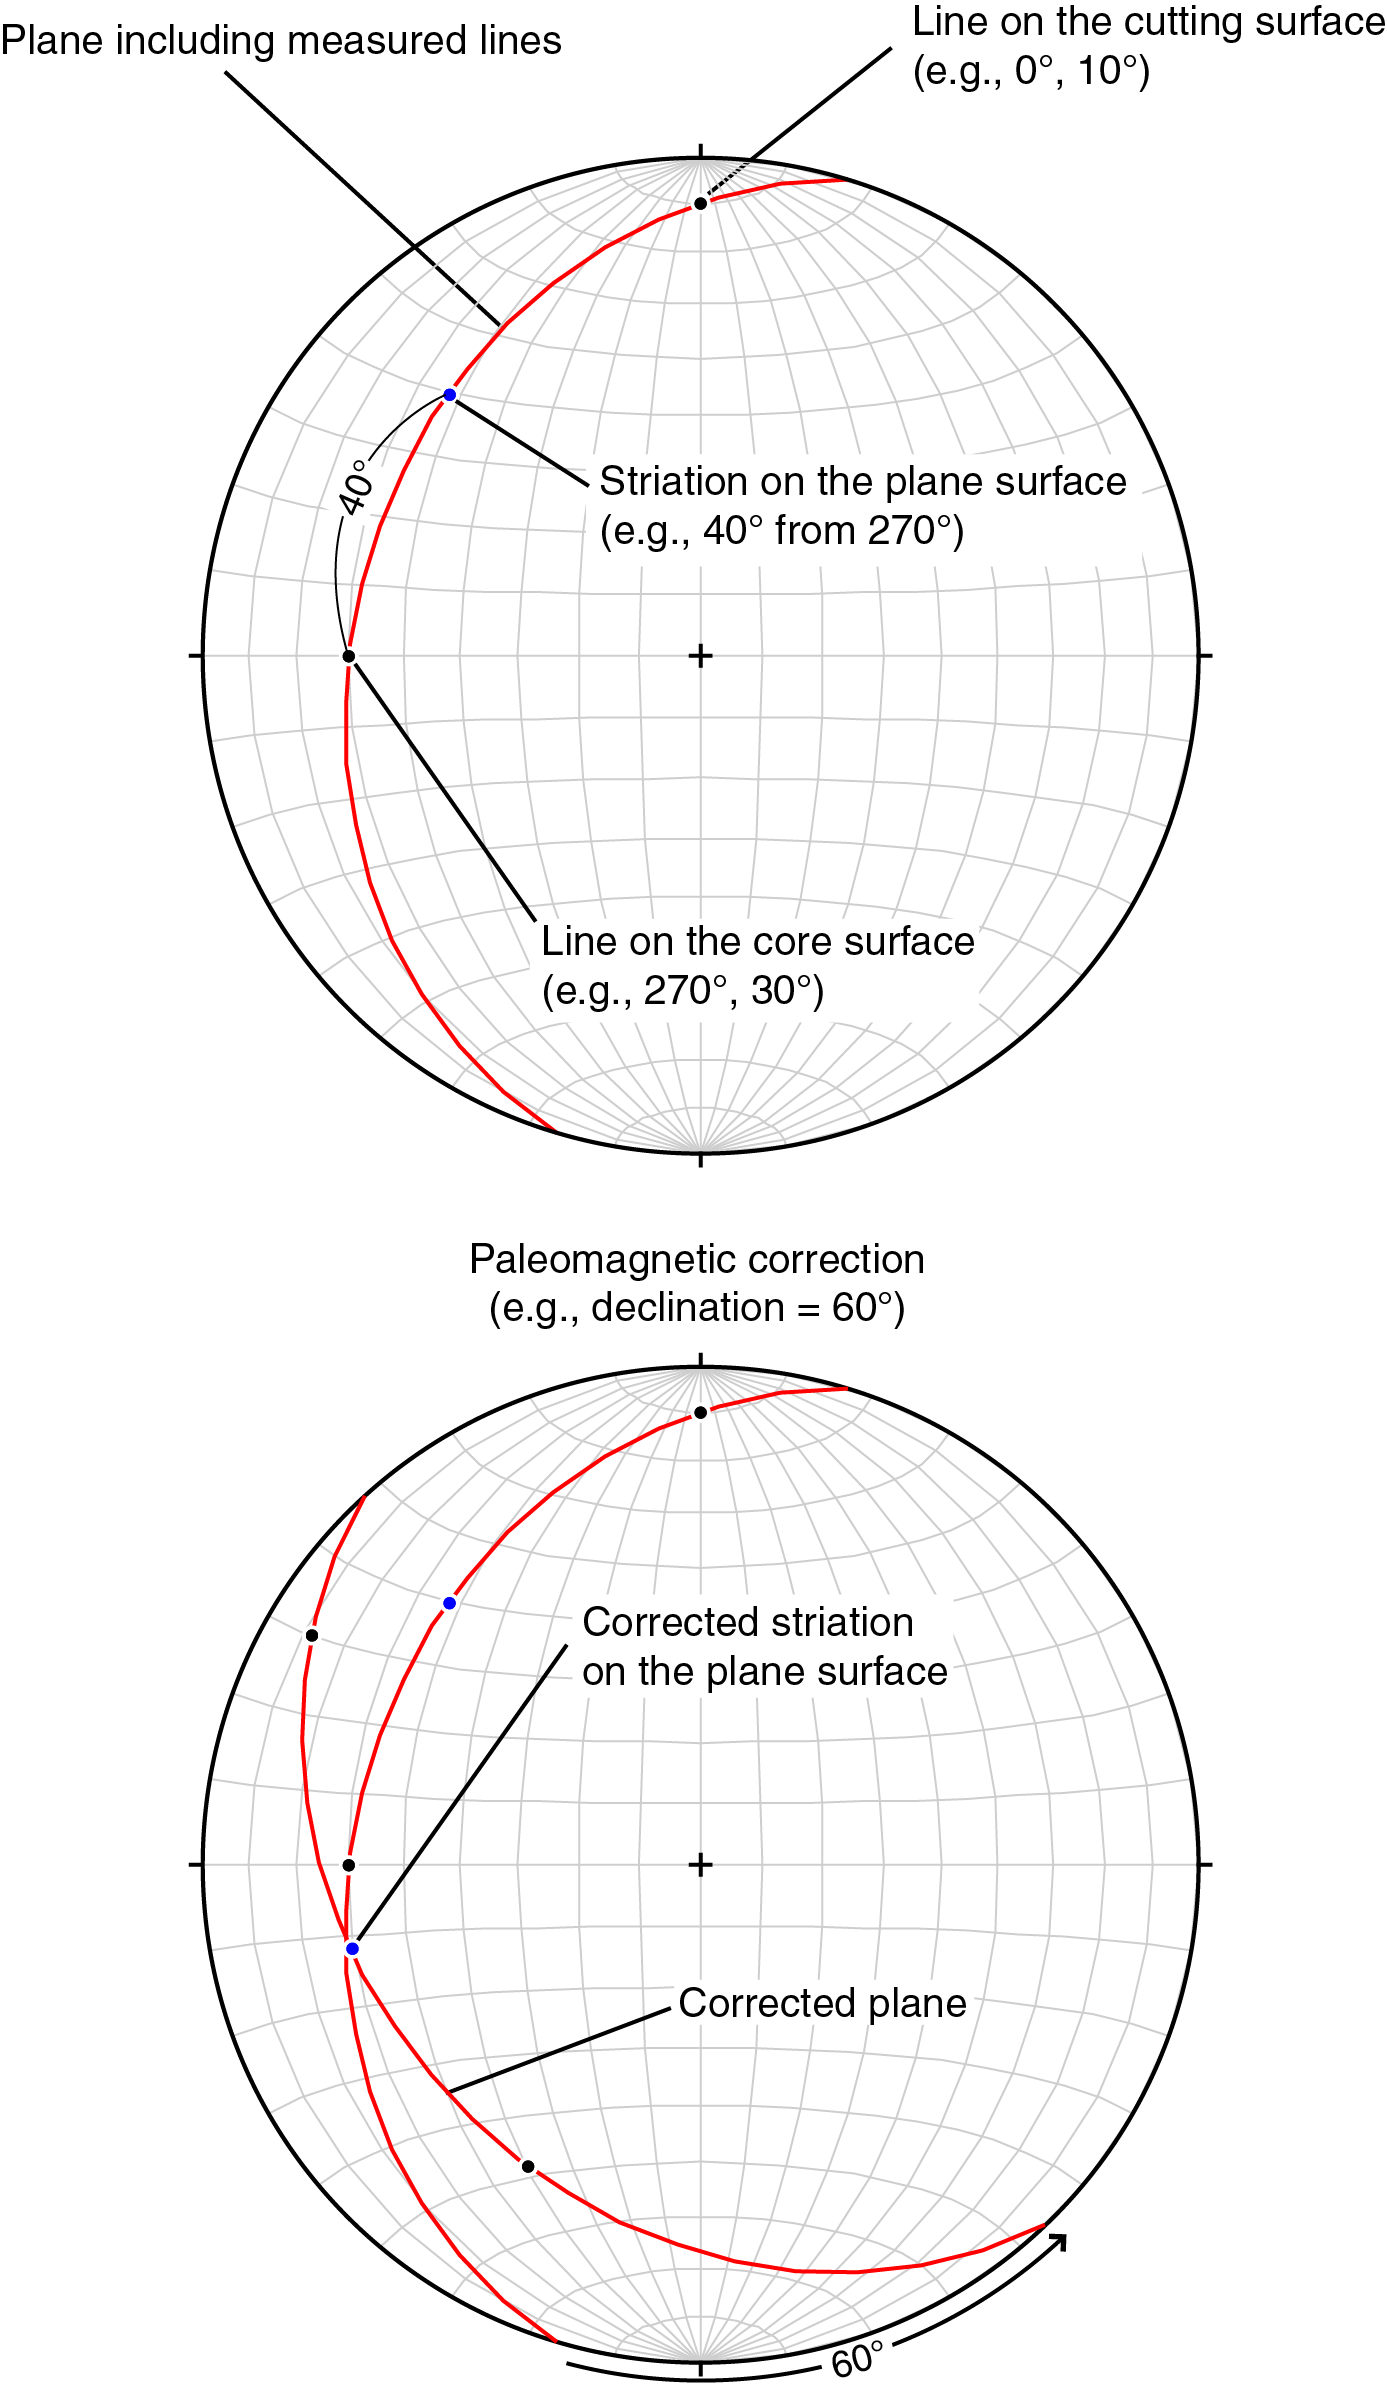 Iodp Publications Volume 362 Expedition Reports Form Below To Delete This Basic Hydraulic Circuit Image From Our Index Lower Hemisphere Equal Area Projections Showing The Procedure For Converting 2 D Measured Data 3